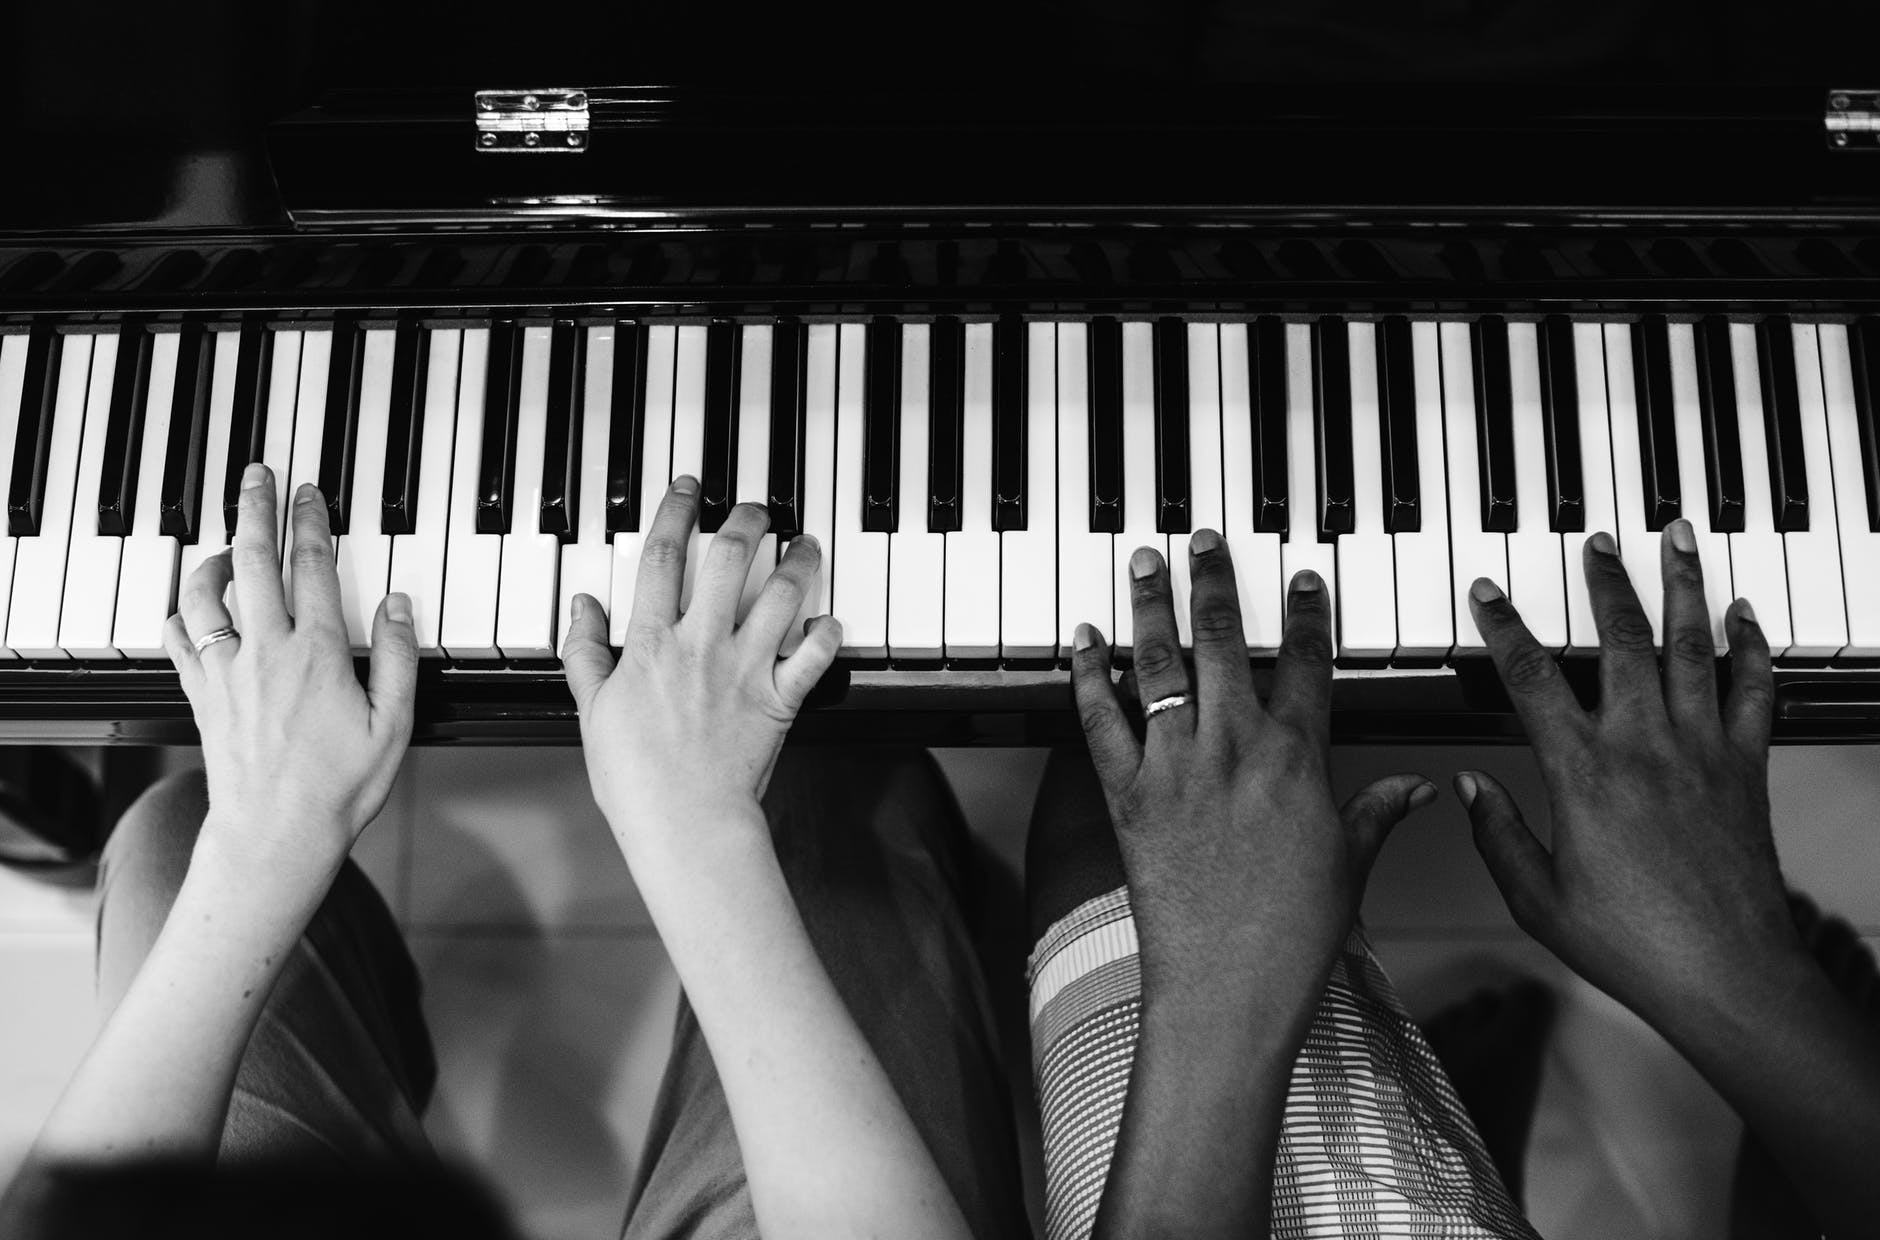 monochrome photography of people playing piano